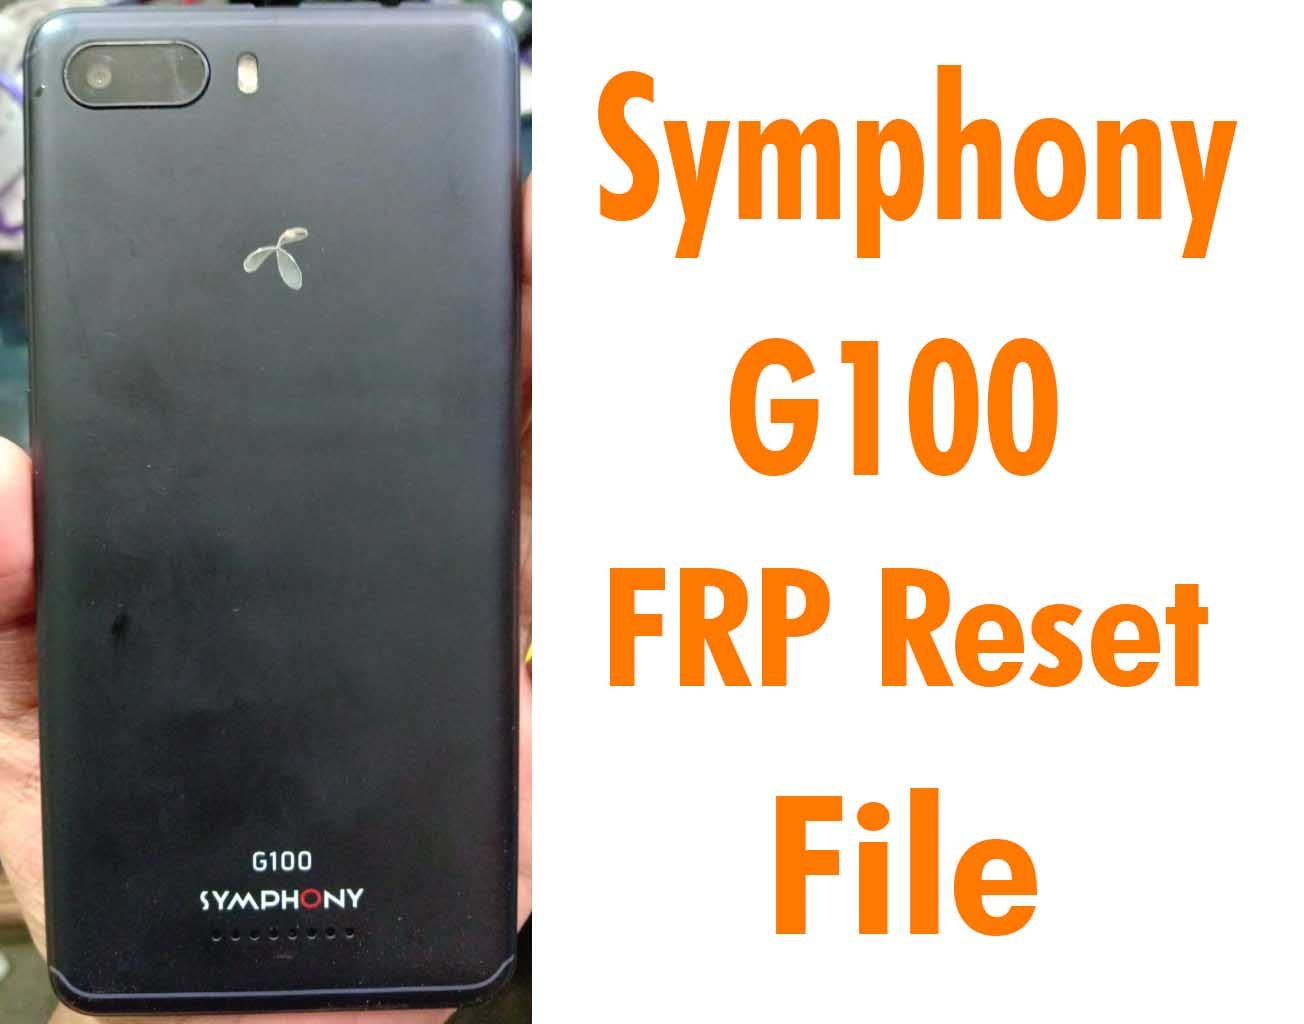 Symphony G100 Frp Reset File Without Password